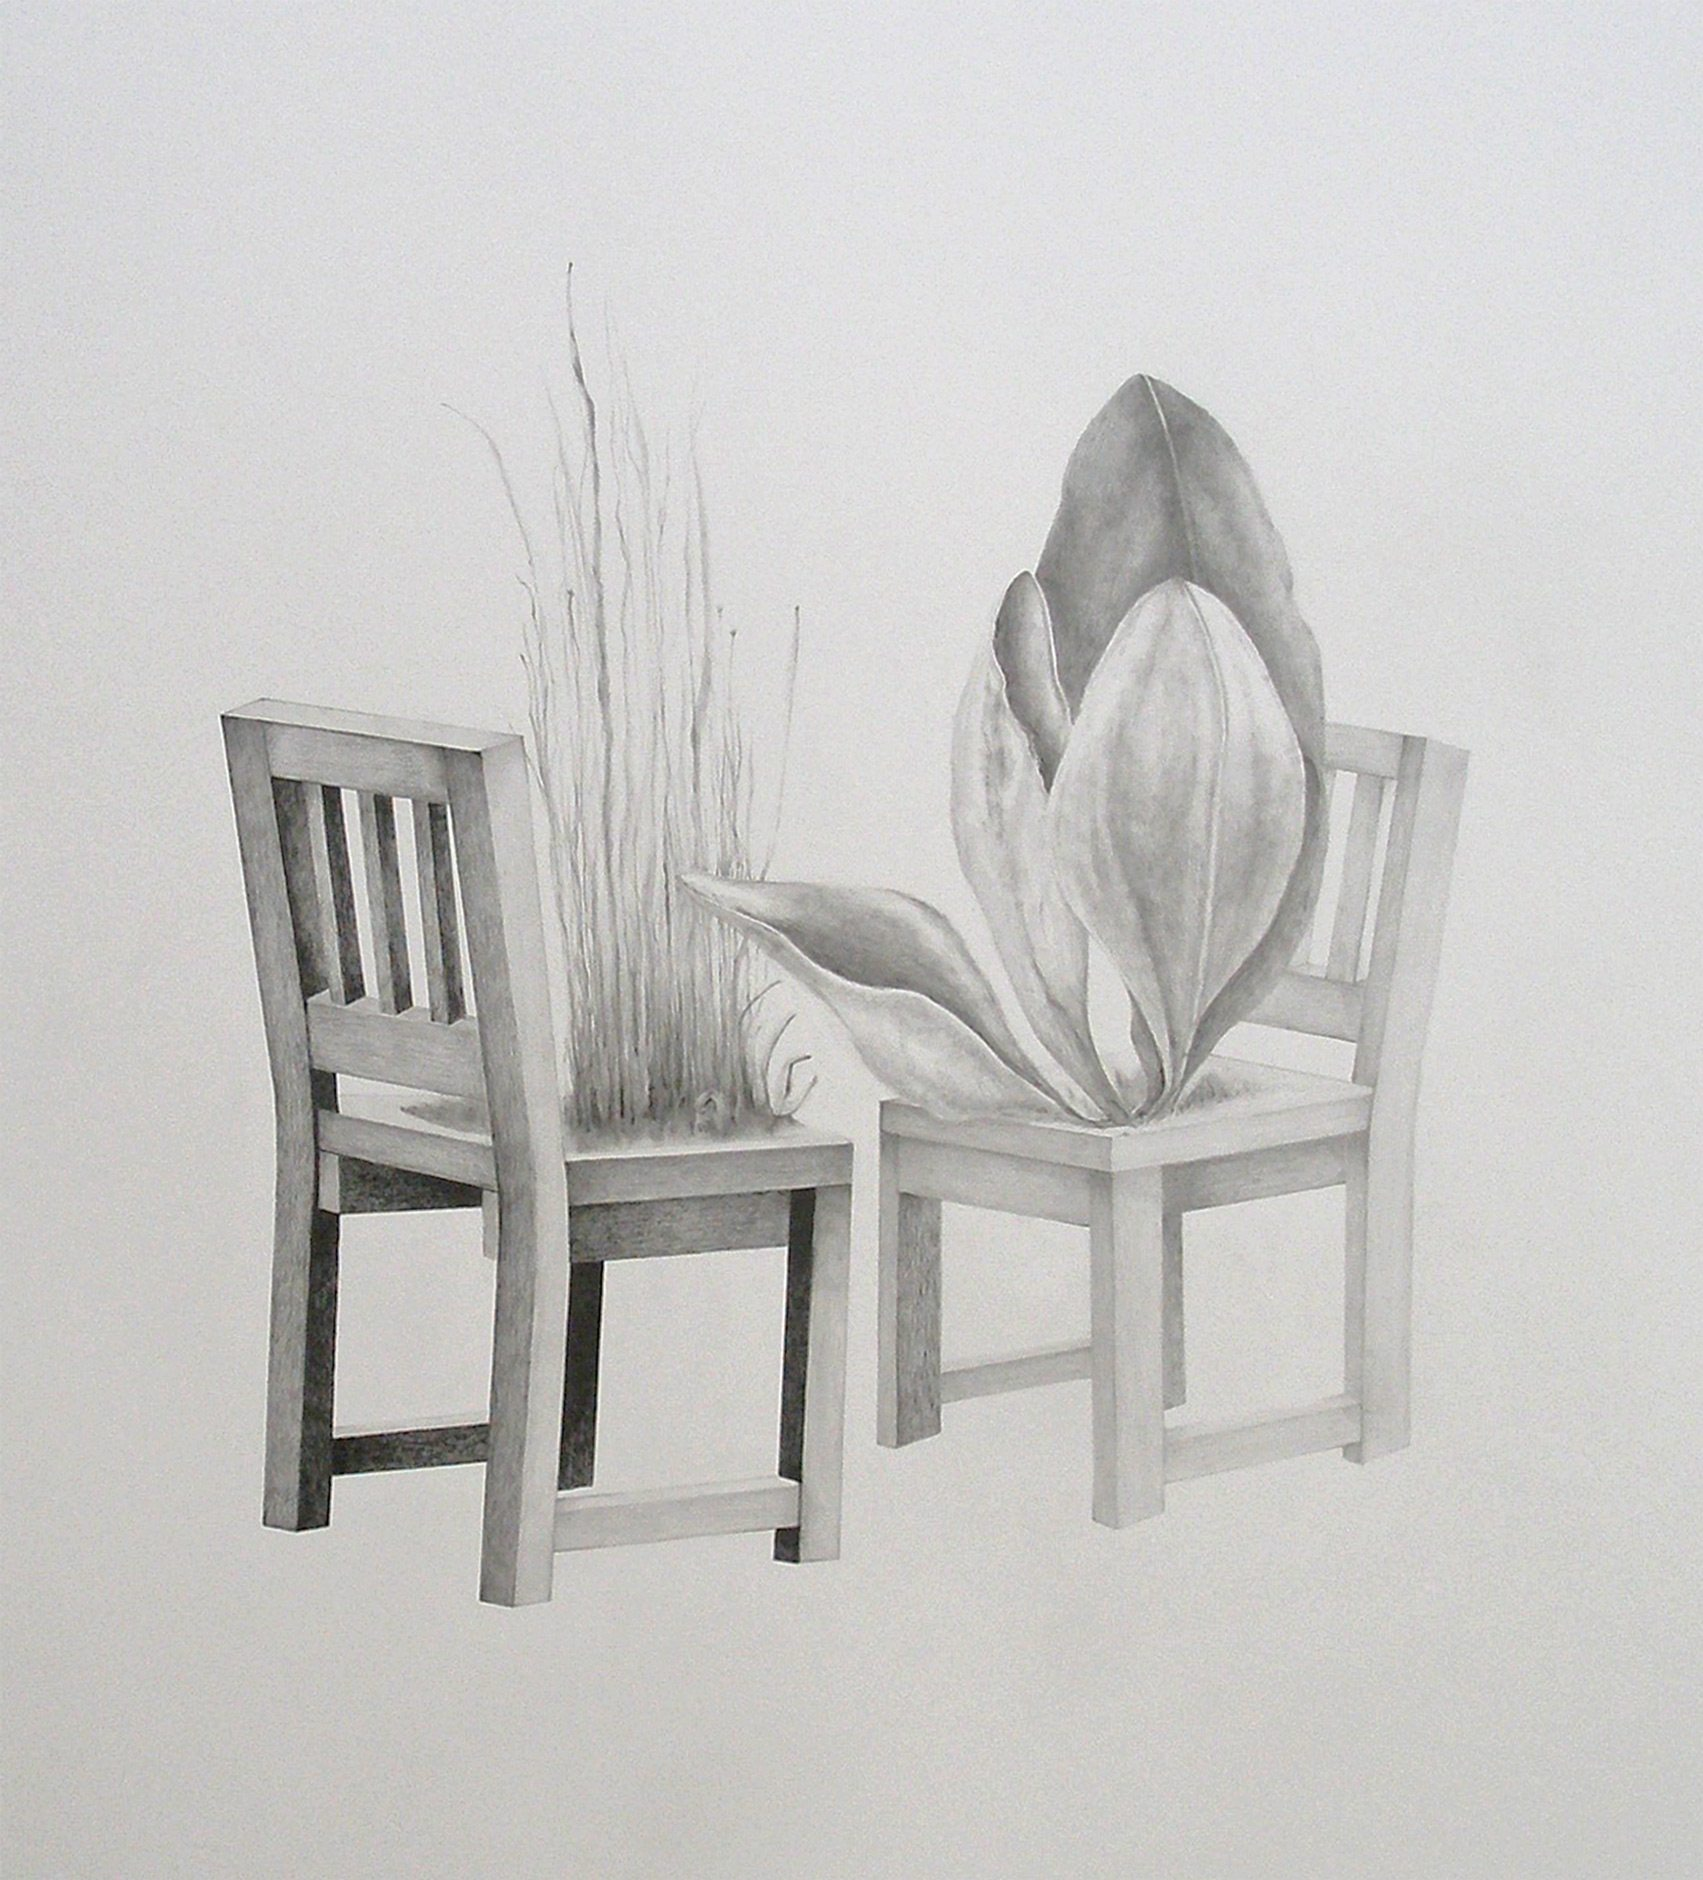 Untitled (détente), Gail Bourgeois